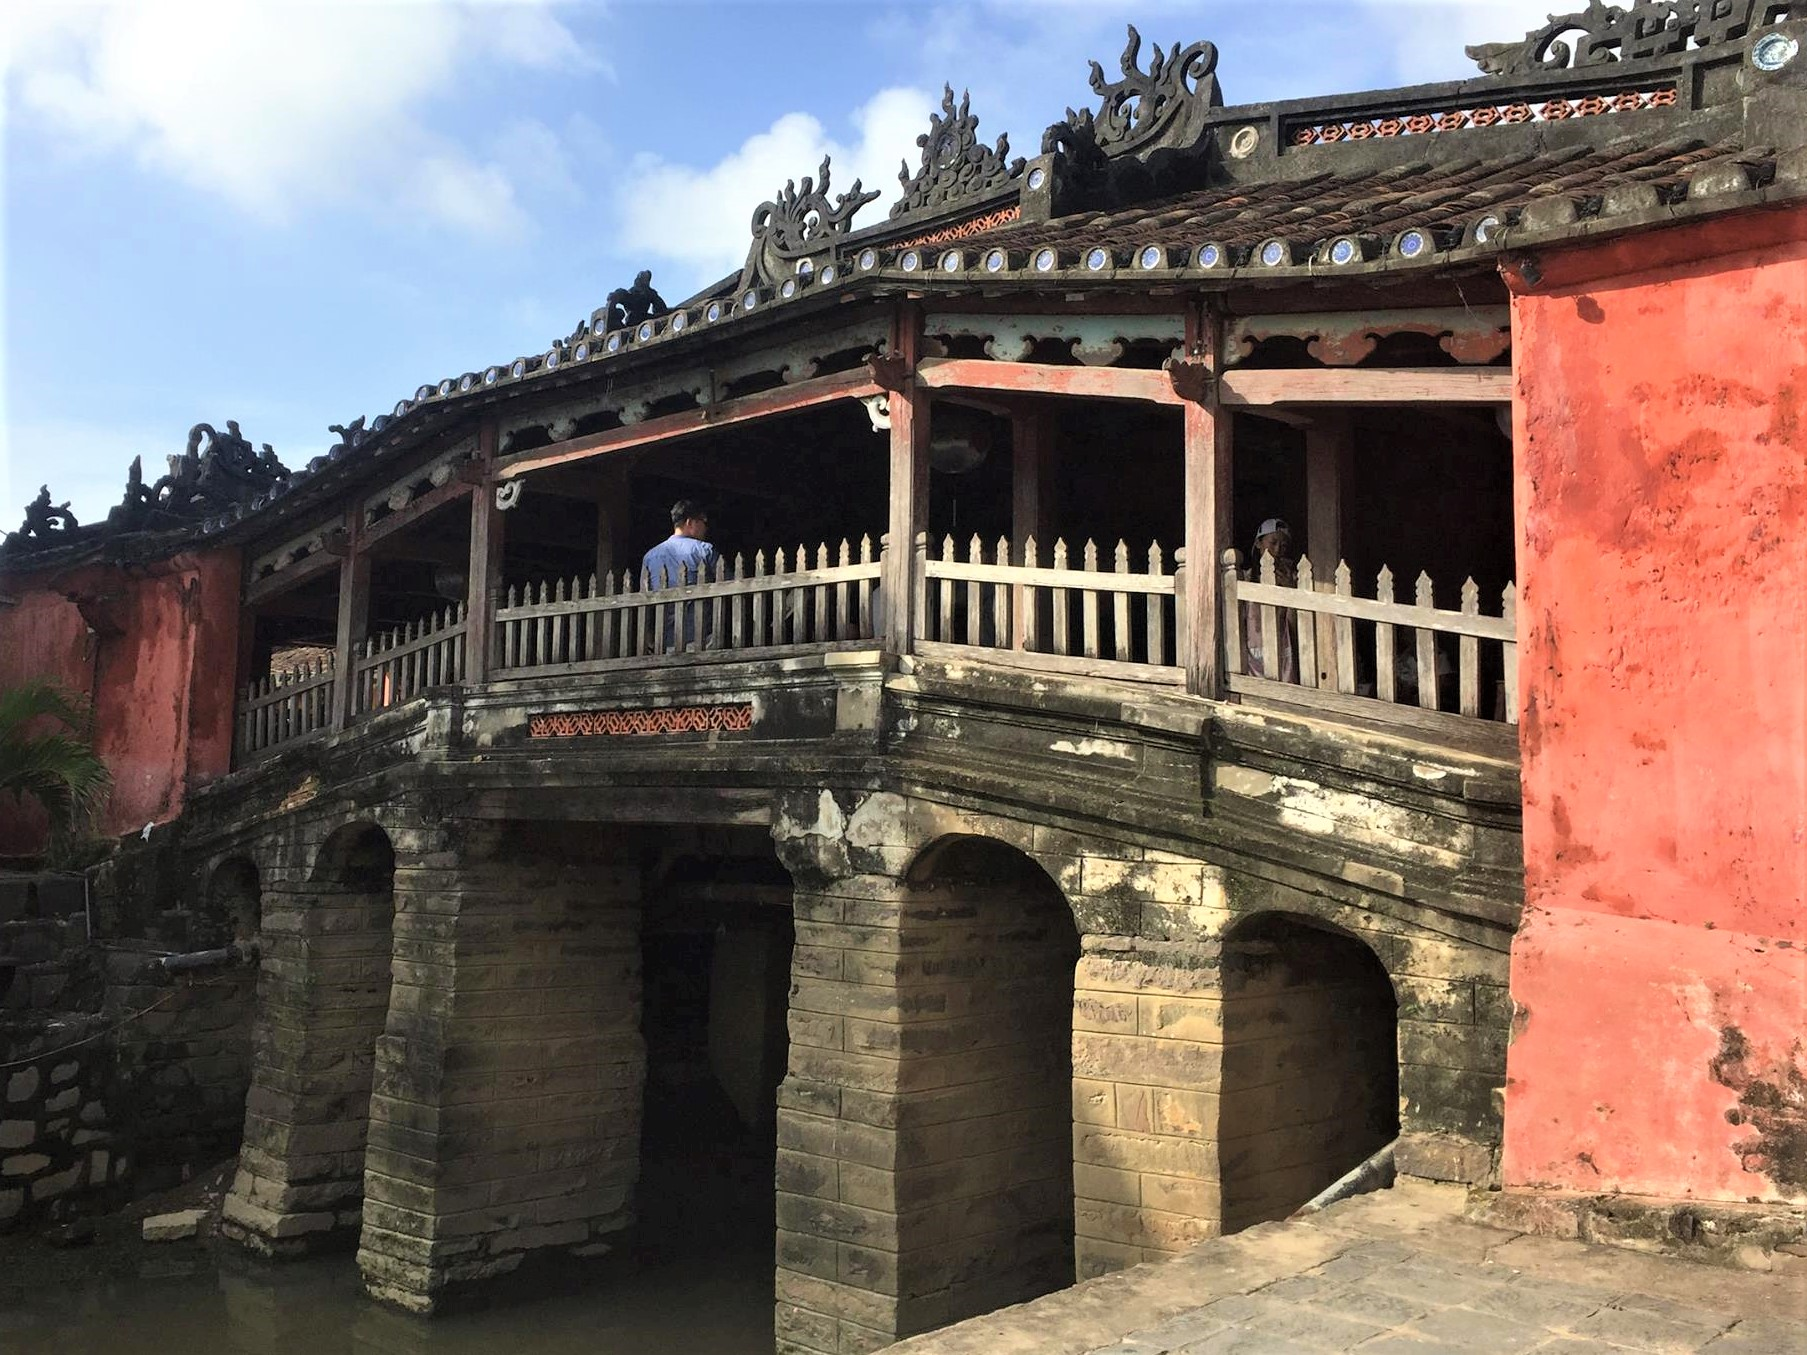 They visited the Japanese Bridge - a must-see place in Hoi An